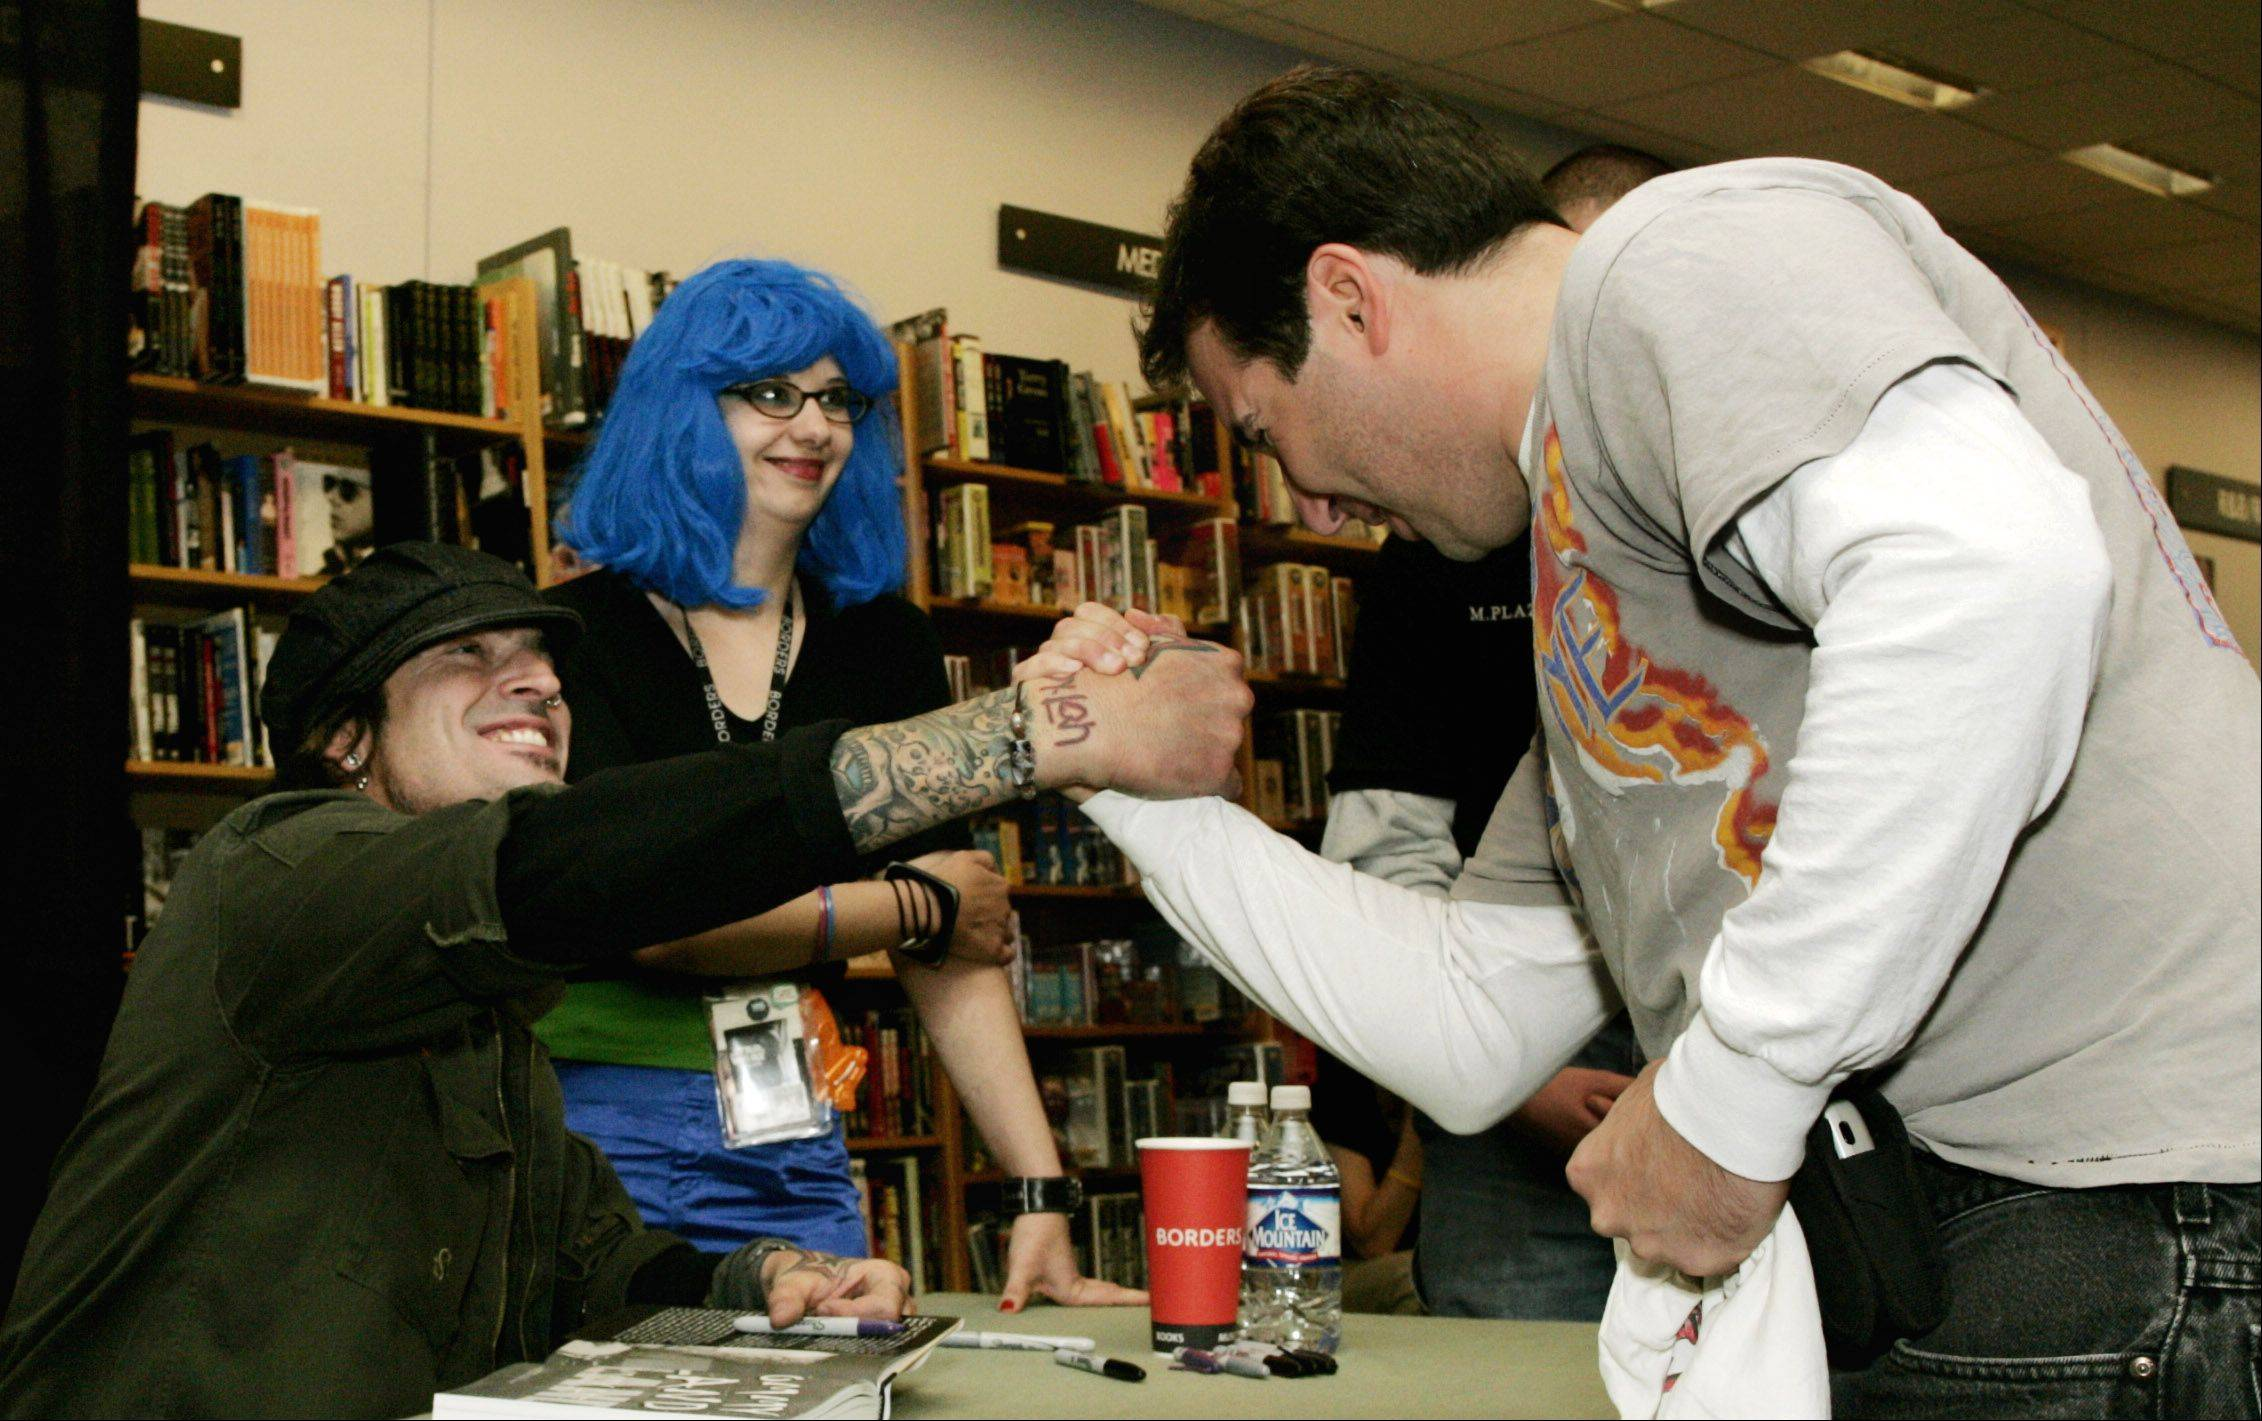 Motley Crue rocker Tommy Lee signed books in 2004 at the Borders store in Oak Brook.